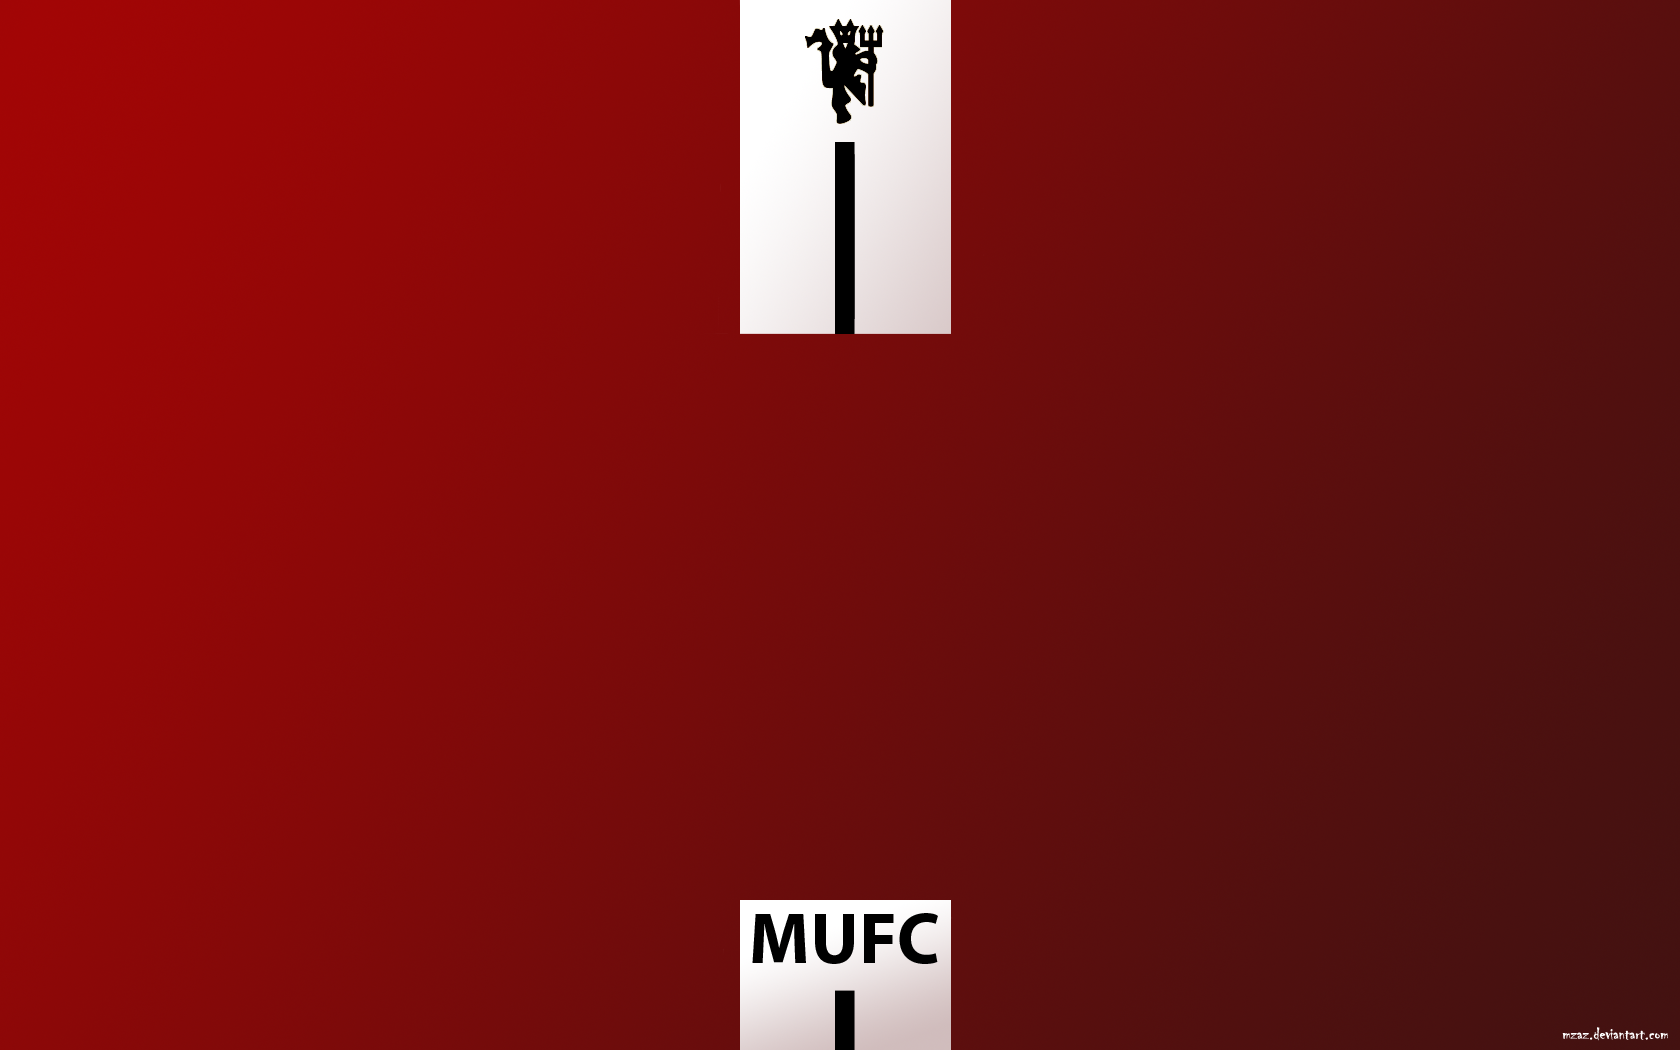 Hd wallpaper manchester united - Manchester United Wallpaper Hd Collection For Free Download